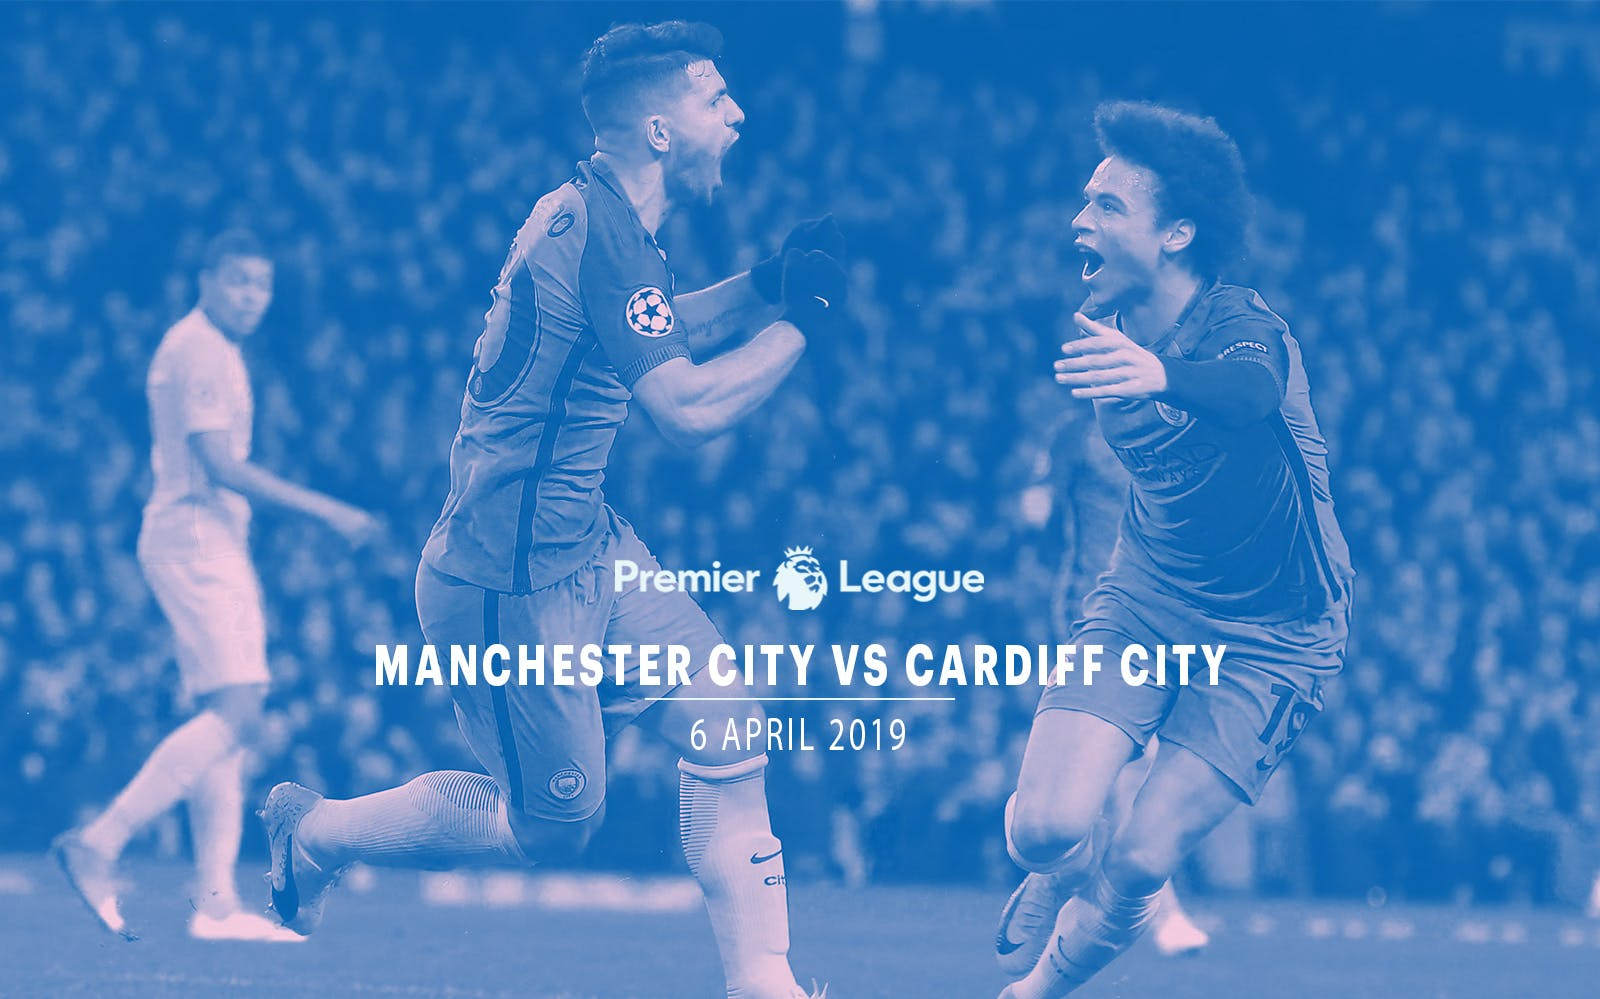 Manchester City vs Cardiff City - 6th Apr '19